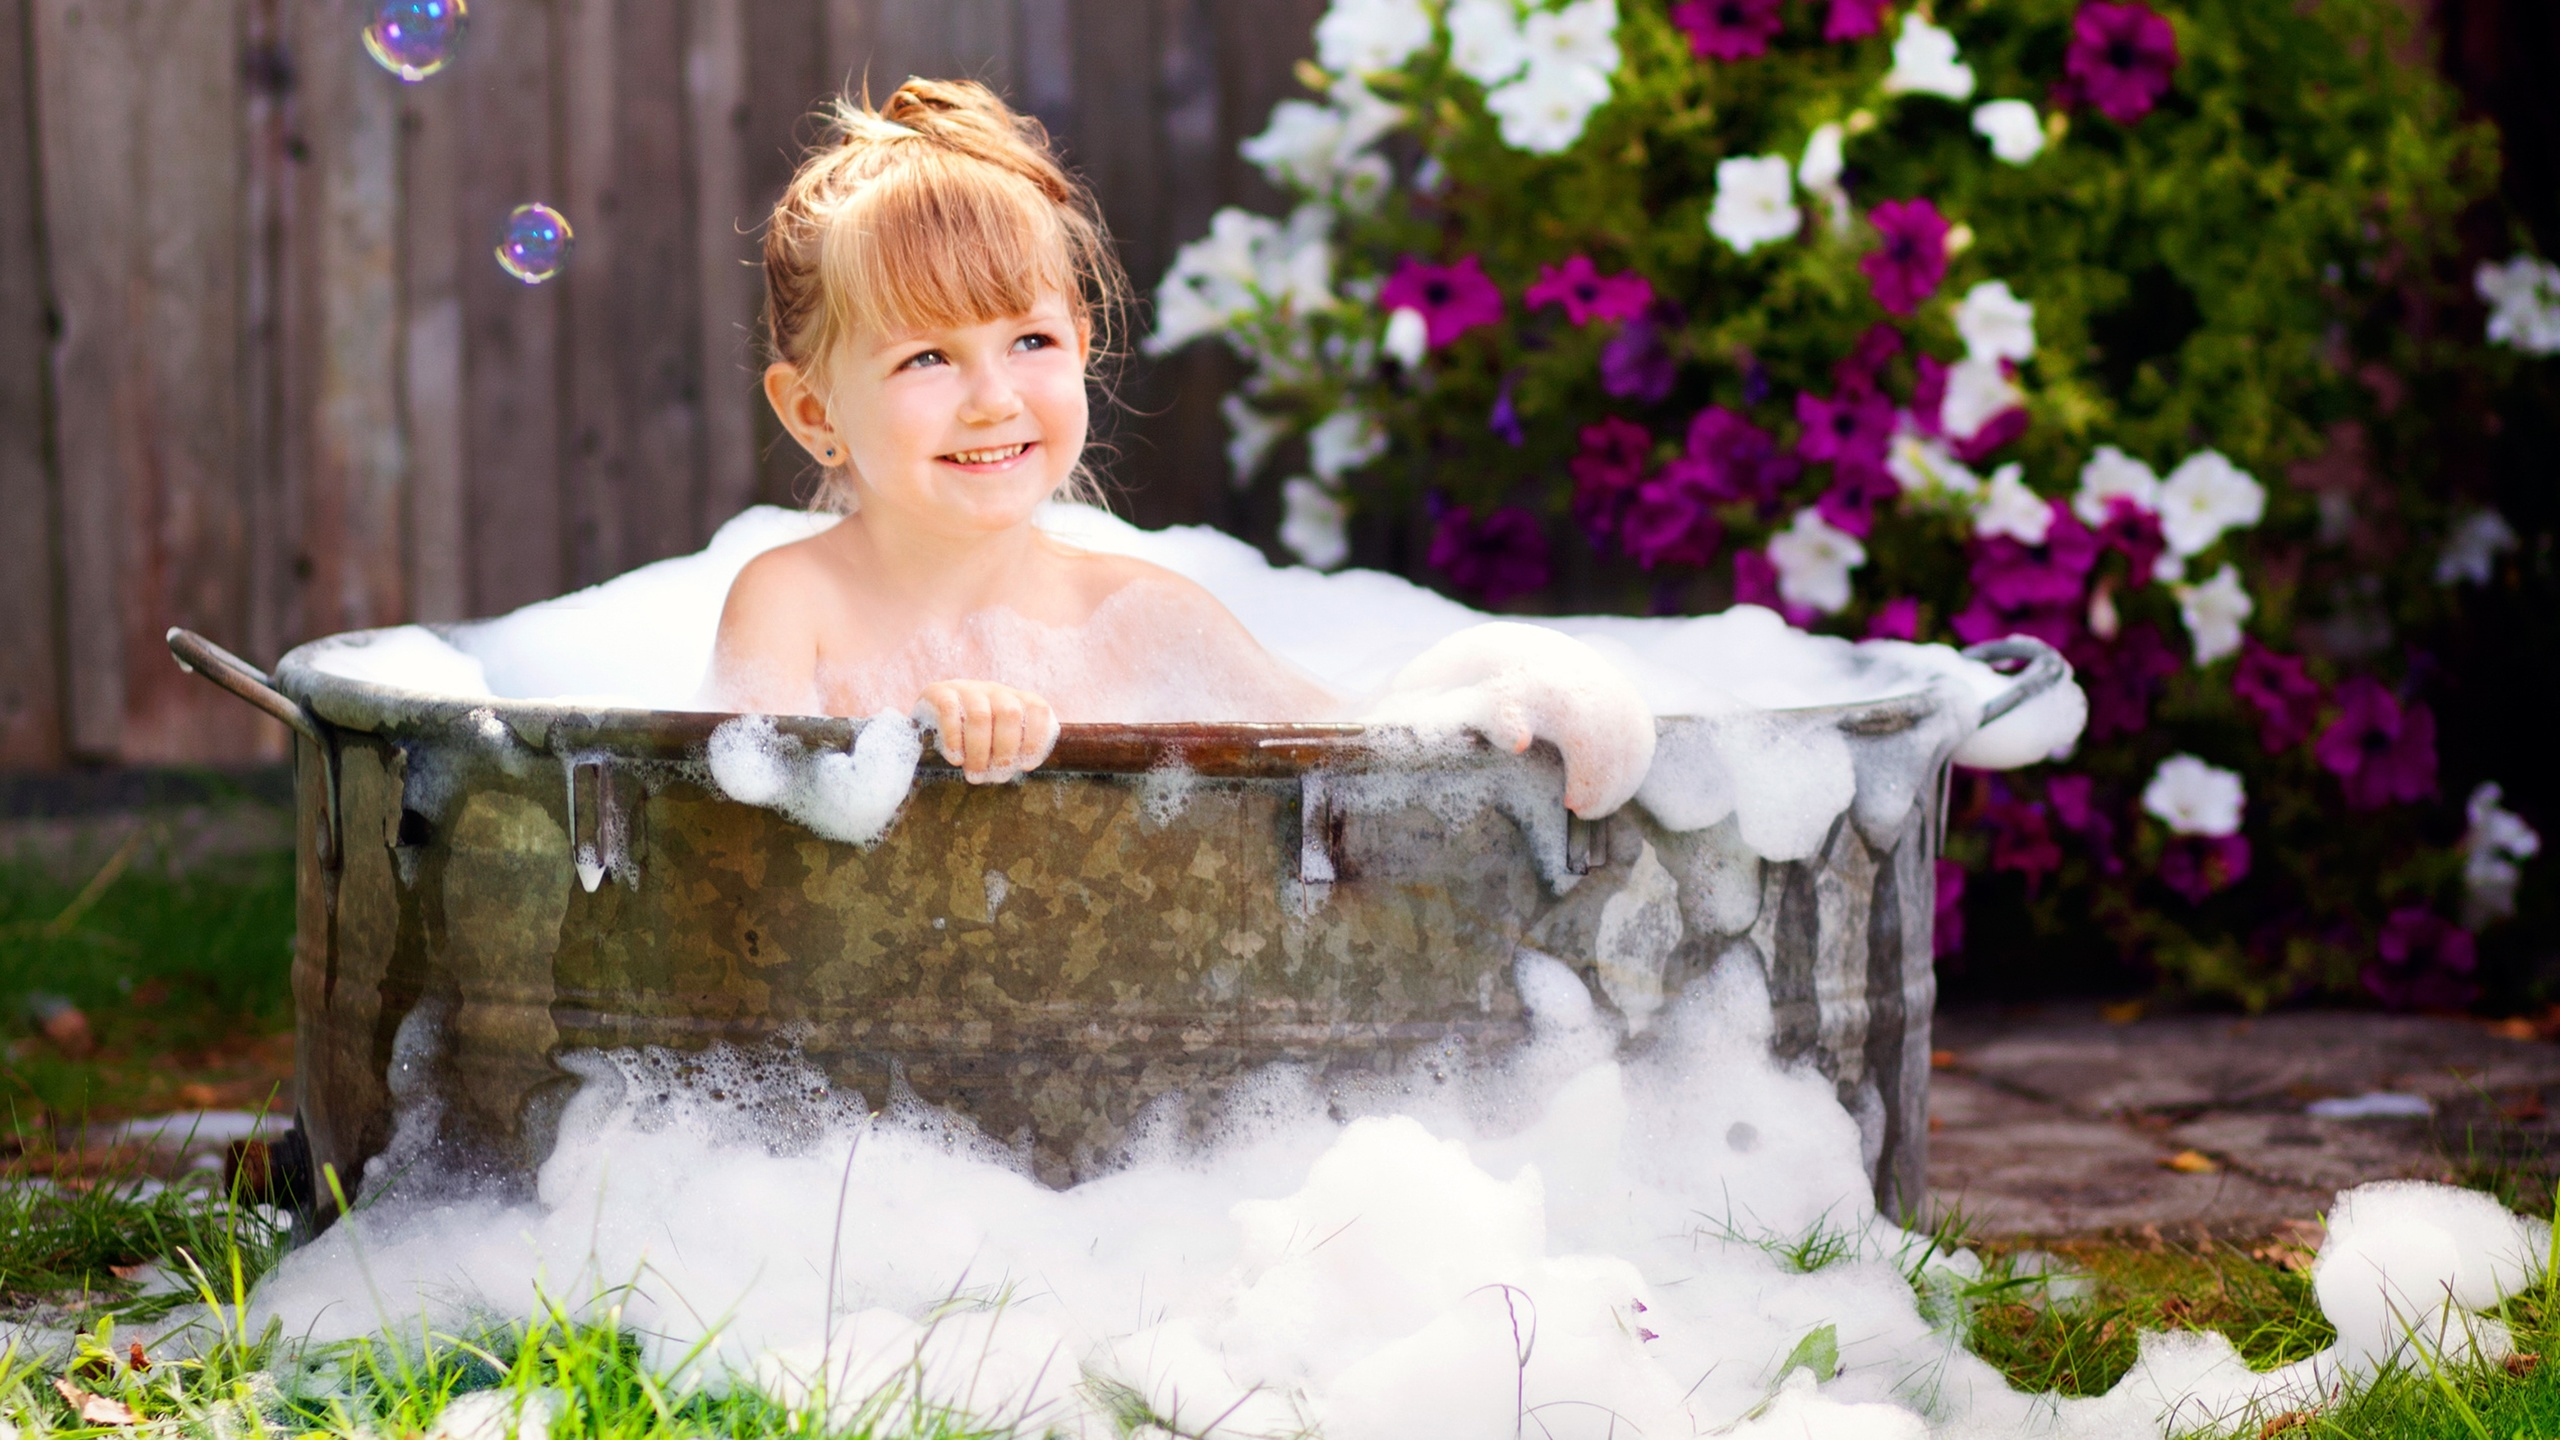 picture-of-girl-in-bubble-bath